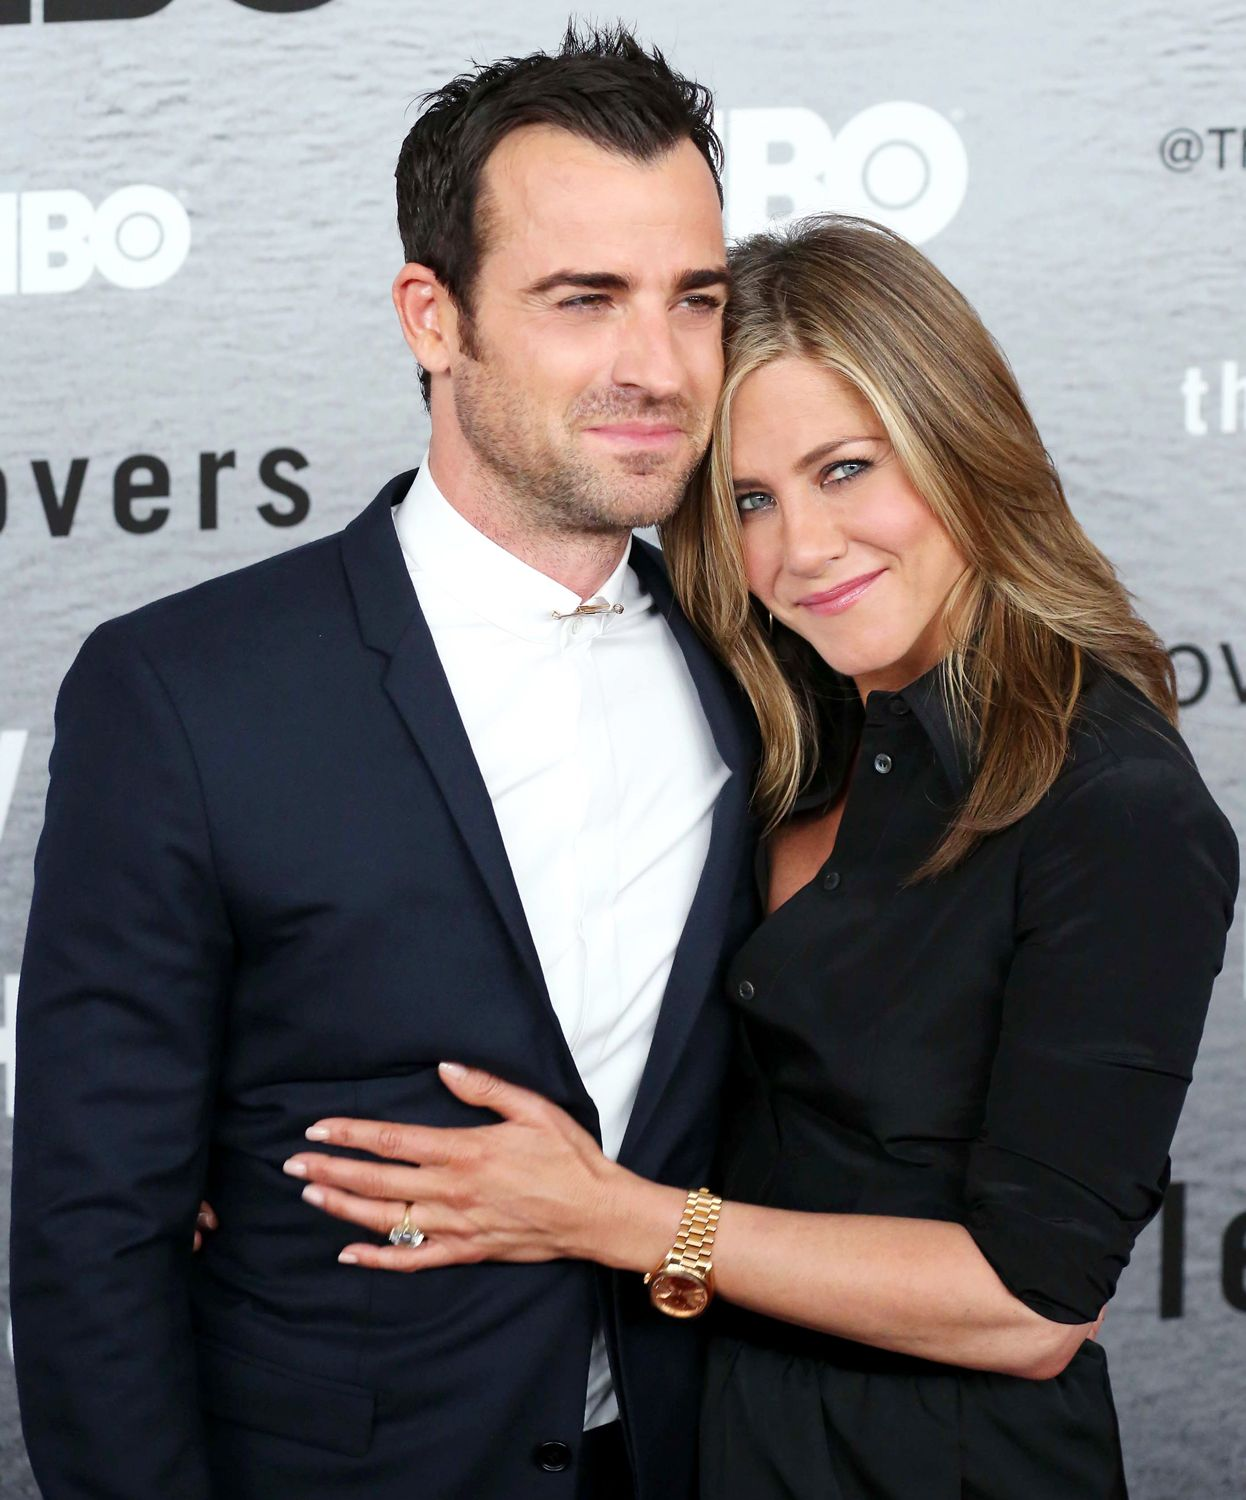 Jennifer Aniston And Justin Theroux S Cutest Couple Moments Jennifer Aniston Interview Jennifer Aniston Jennifer Aniston Wedding